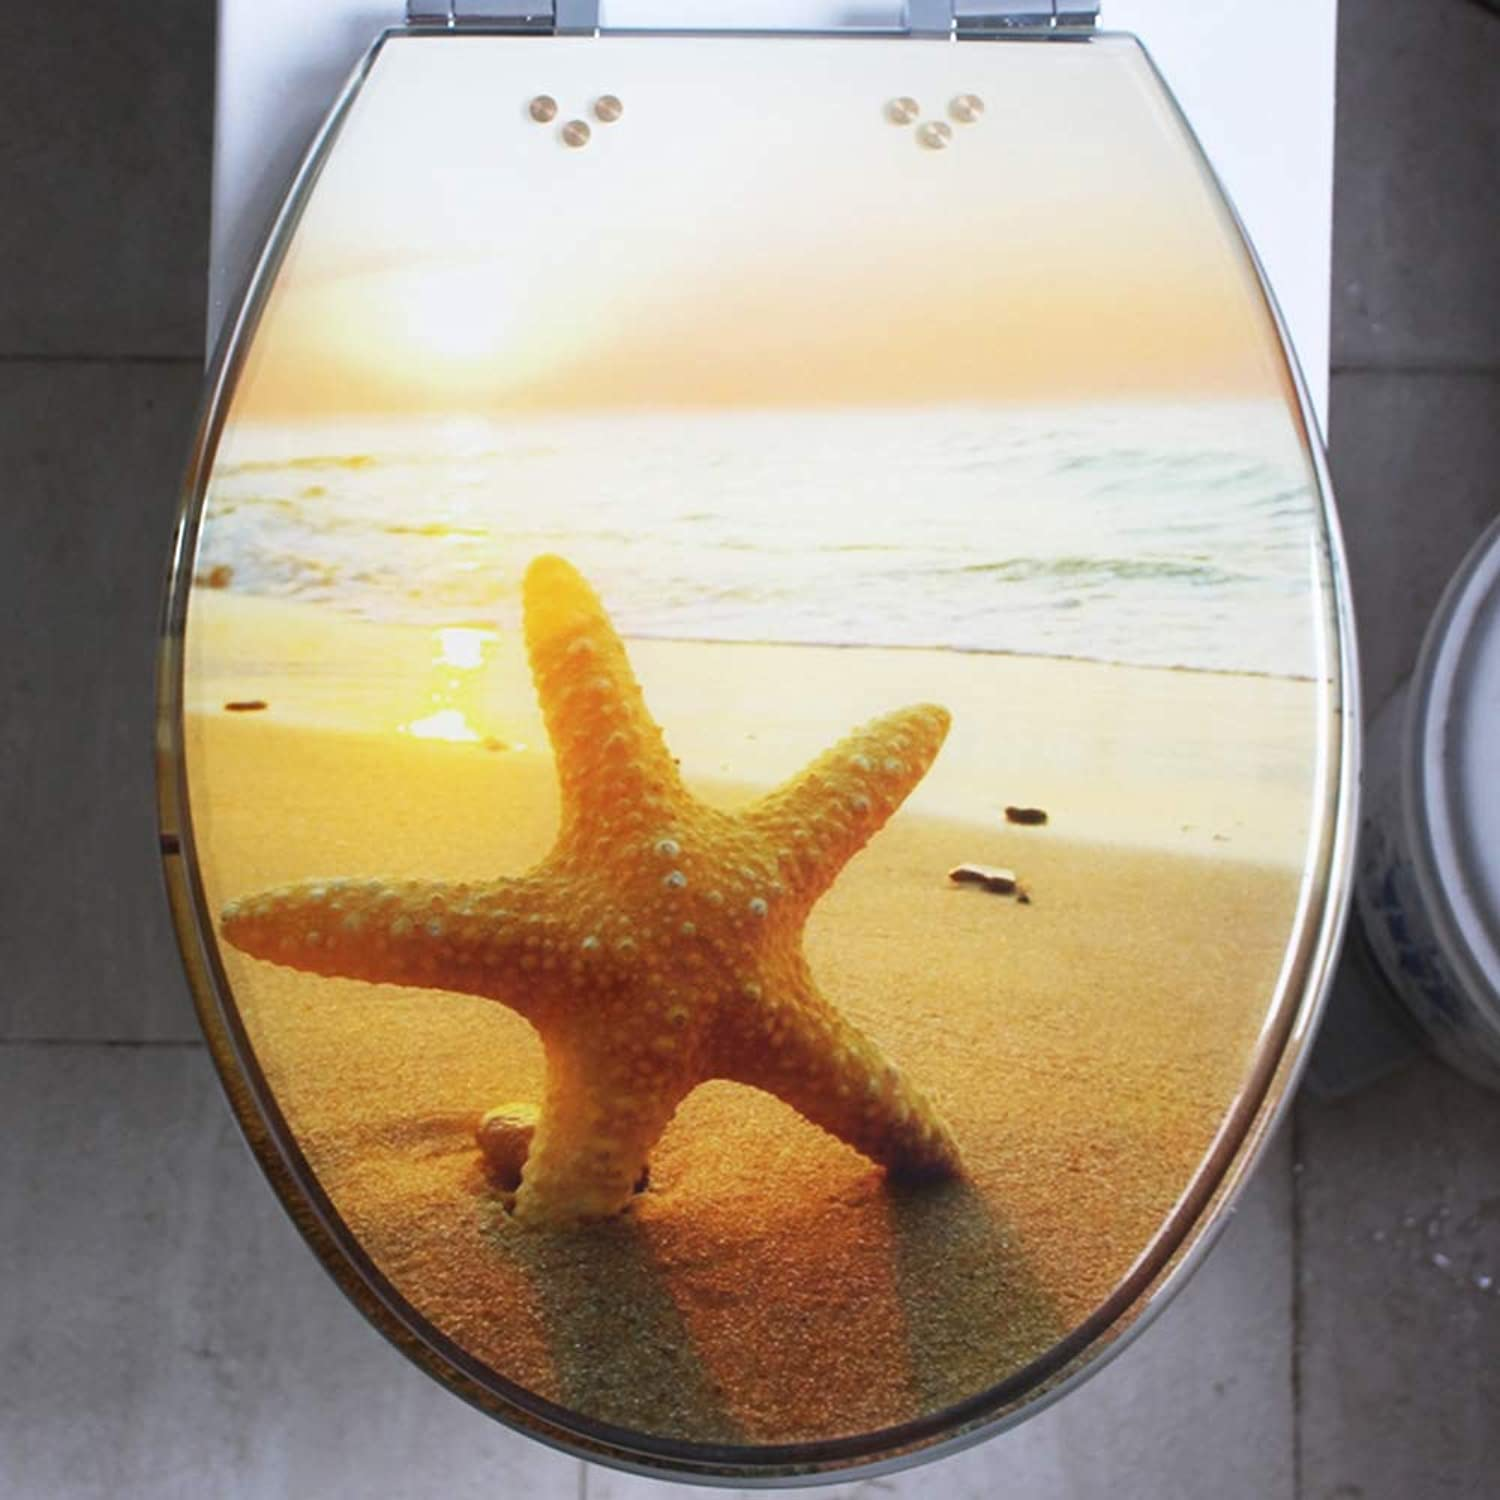 WC Sitz Toilet seat, resin toilet seat, toilet cover, universal UVO thickening, descending stainless steel hinge, morning sun beach